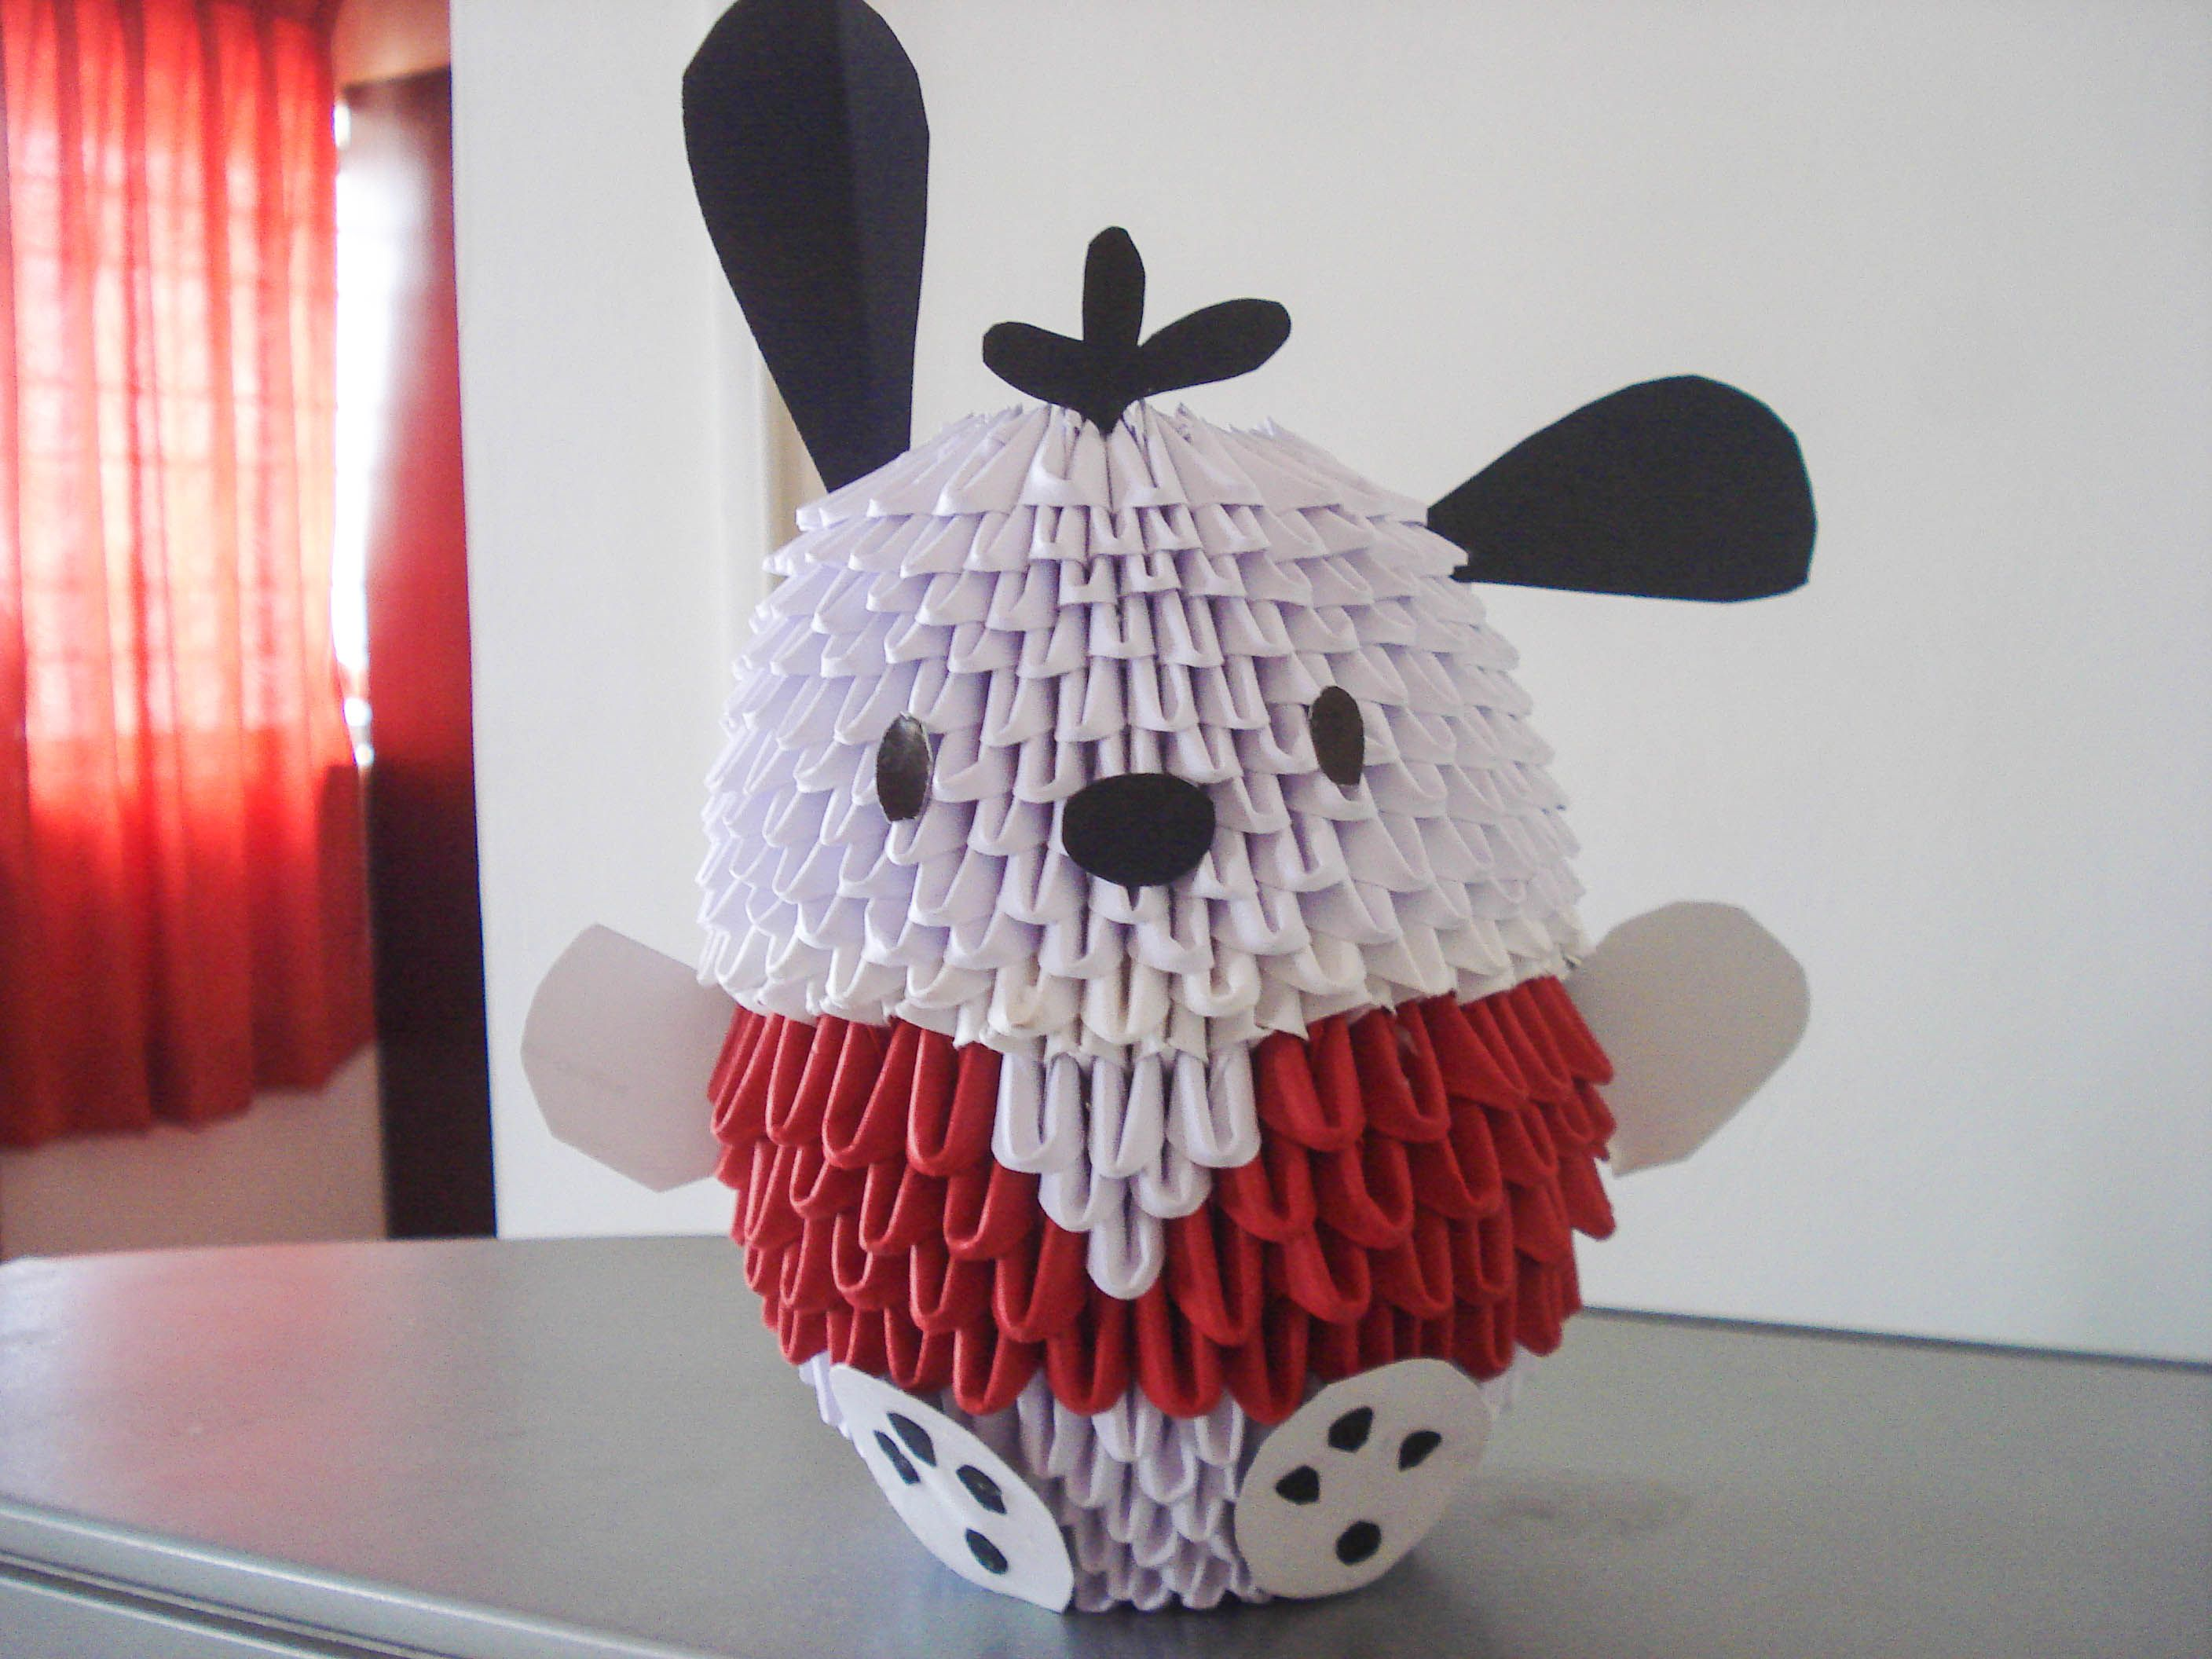 Pocchaco 3d Origami Sanrio Characters 3d Origami Origami Novelty Lamp